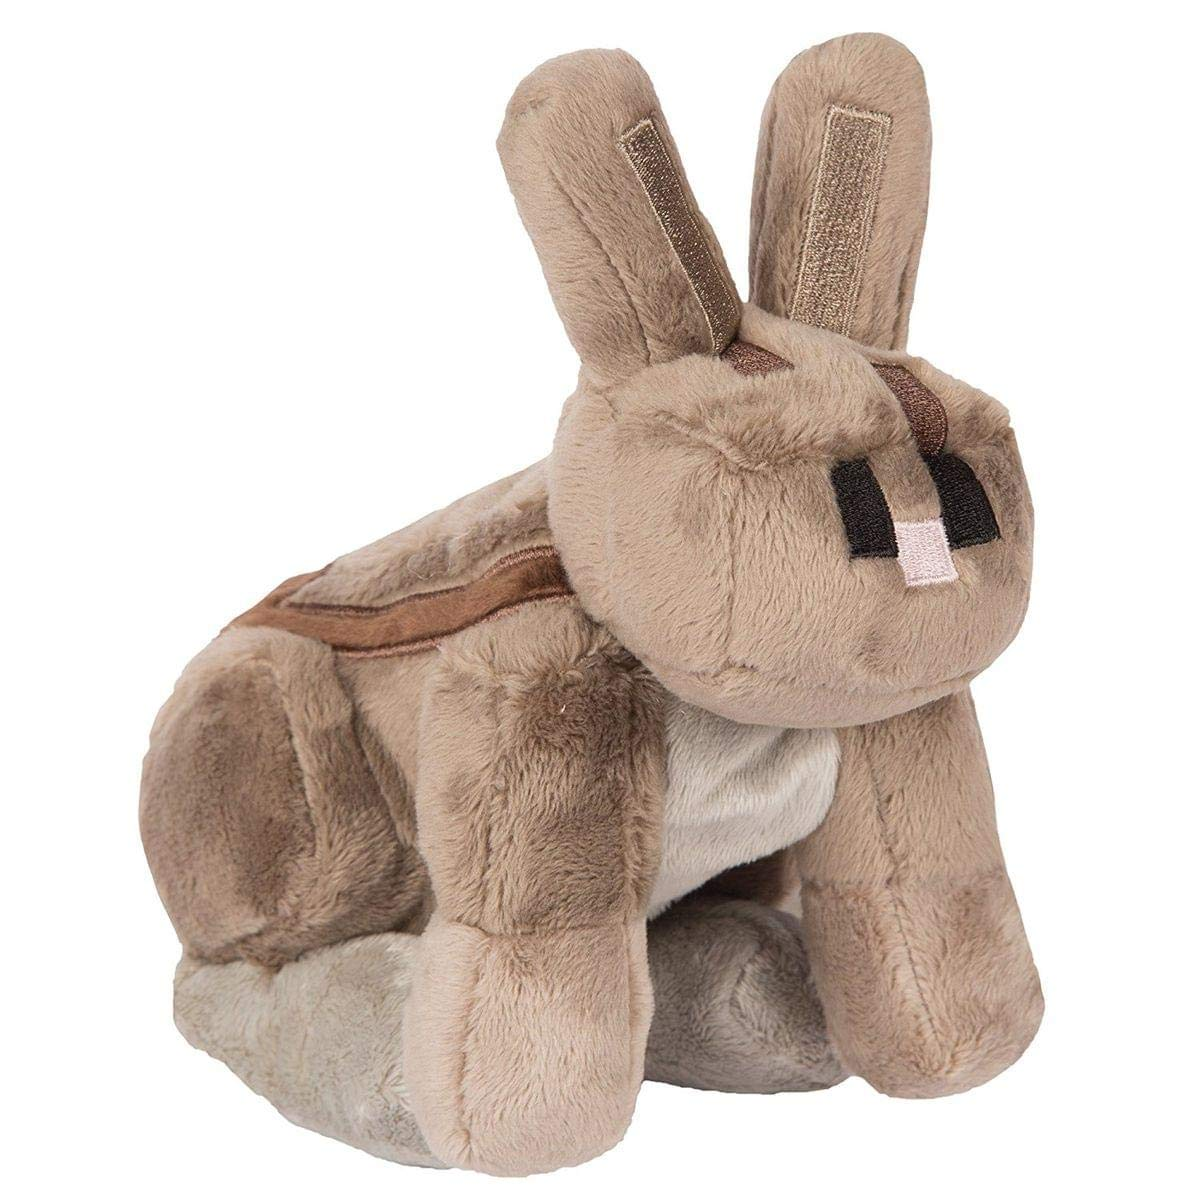 Minecraft 6365 8-Inch Rabbit Plush Toy